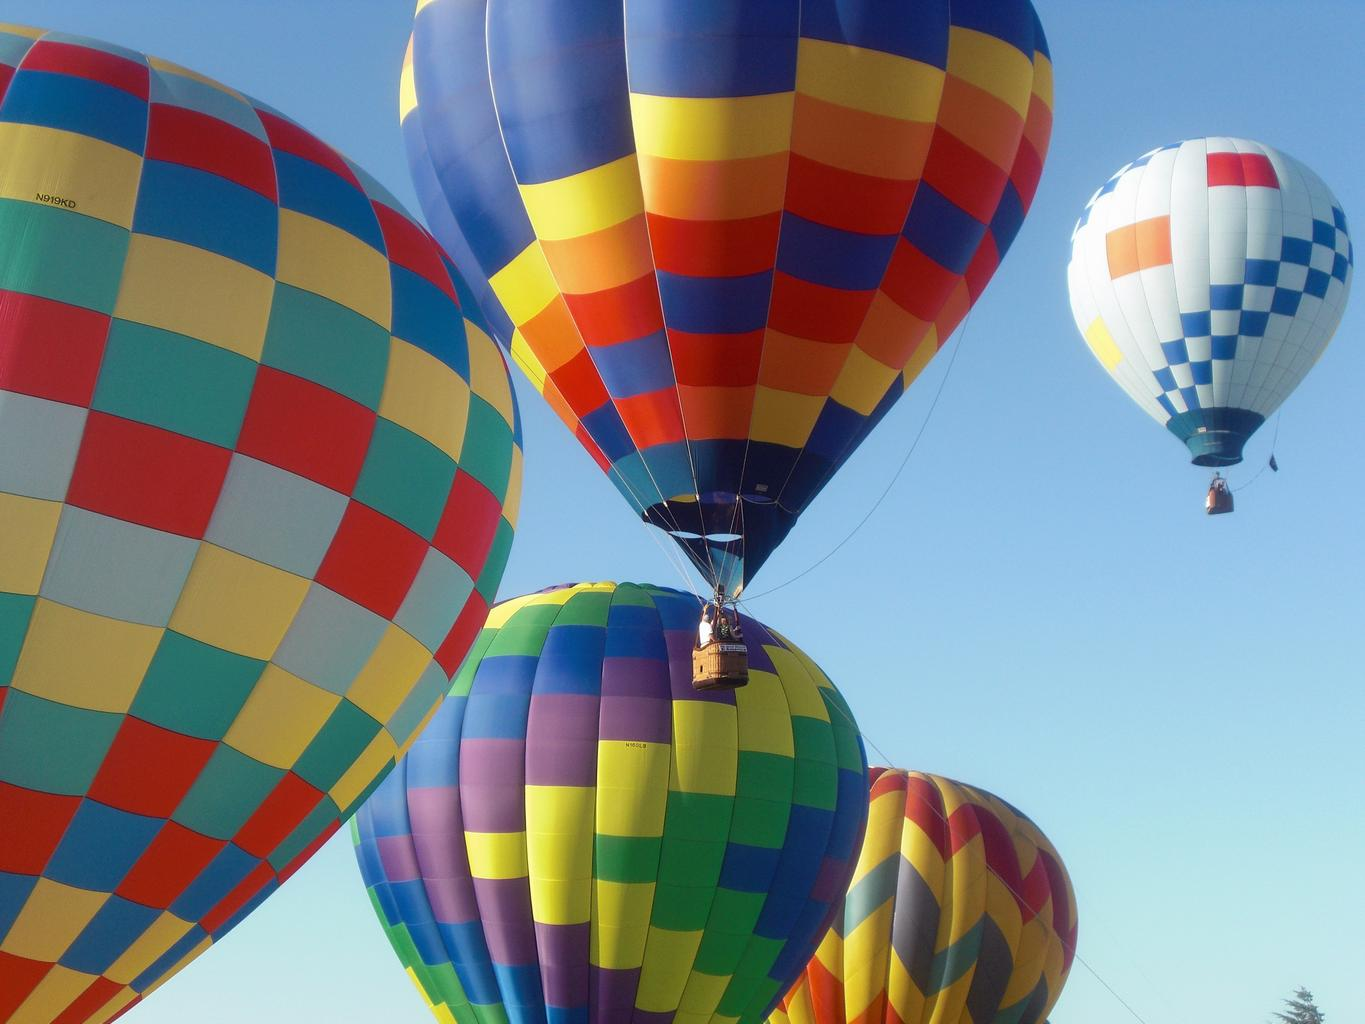 hot air ballons picture used for team management